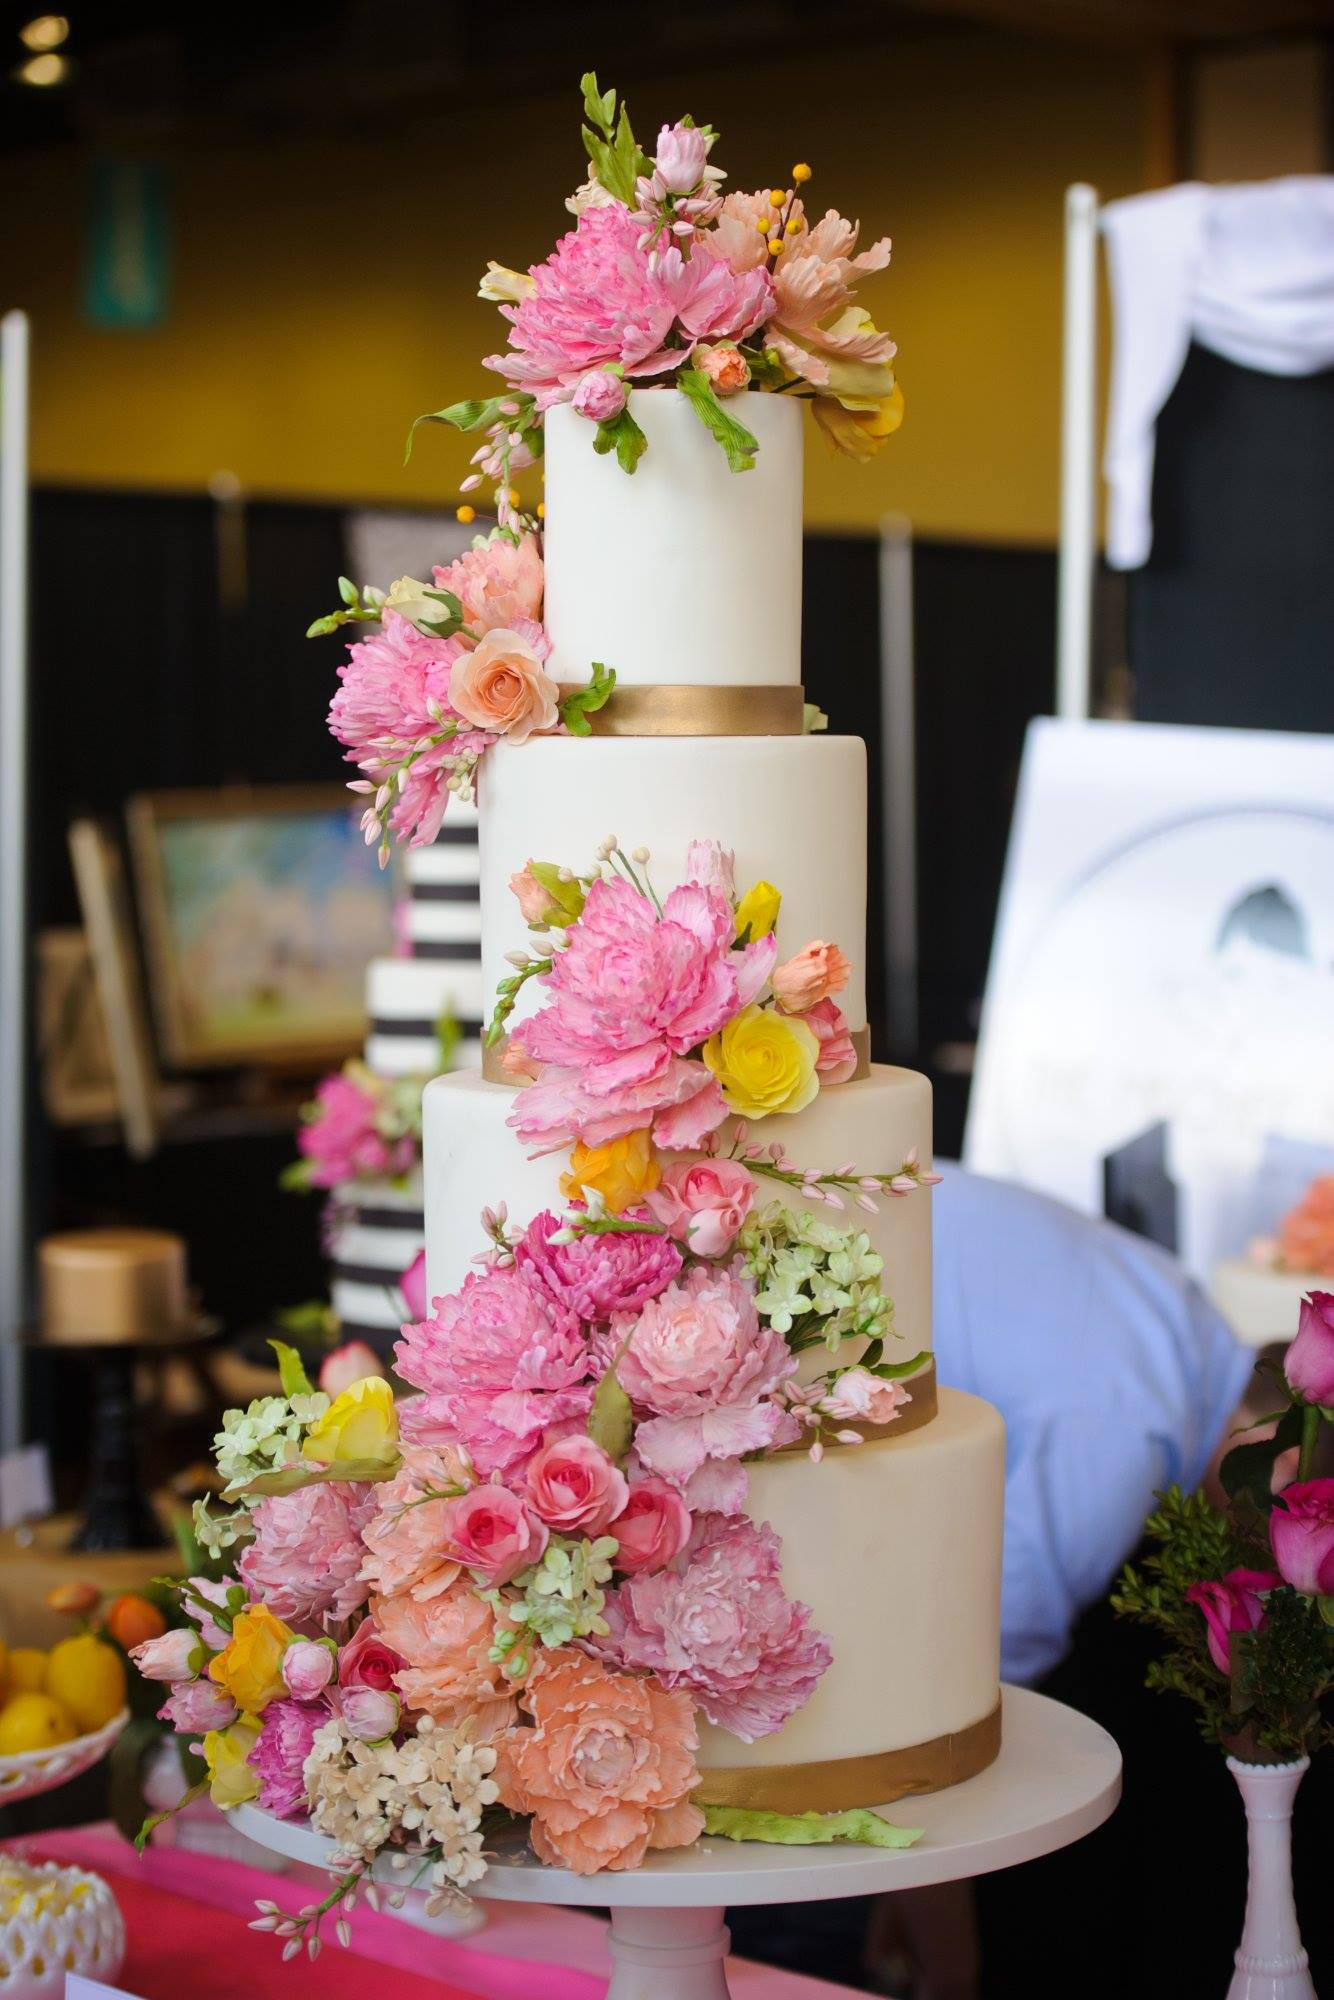 40 wedding cake designs with elaborate fondant flowers modwedding. Black Bedroom Furniture Sets. Home Design Ideas